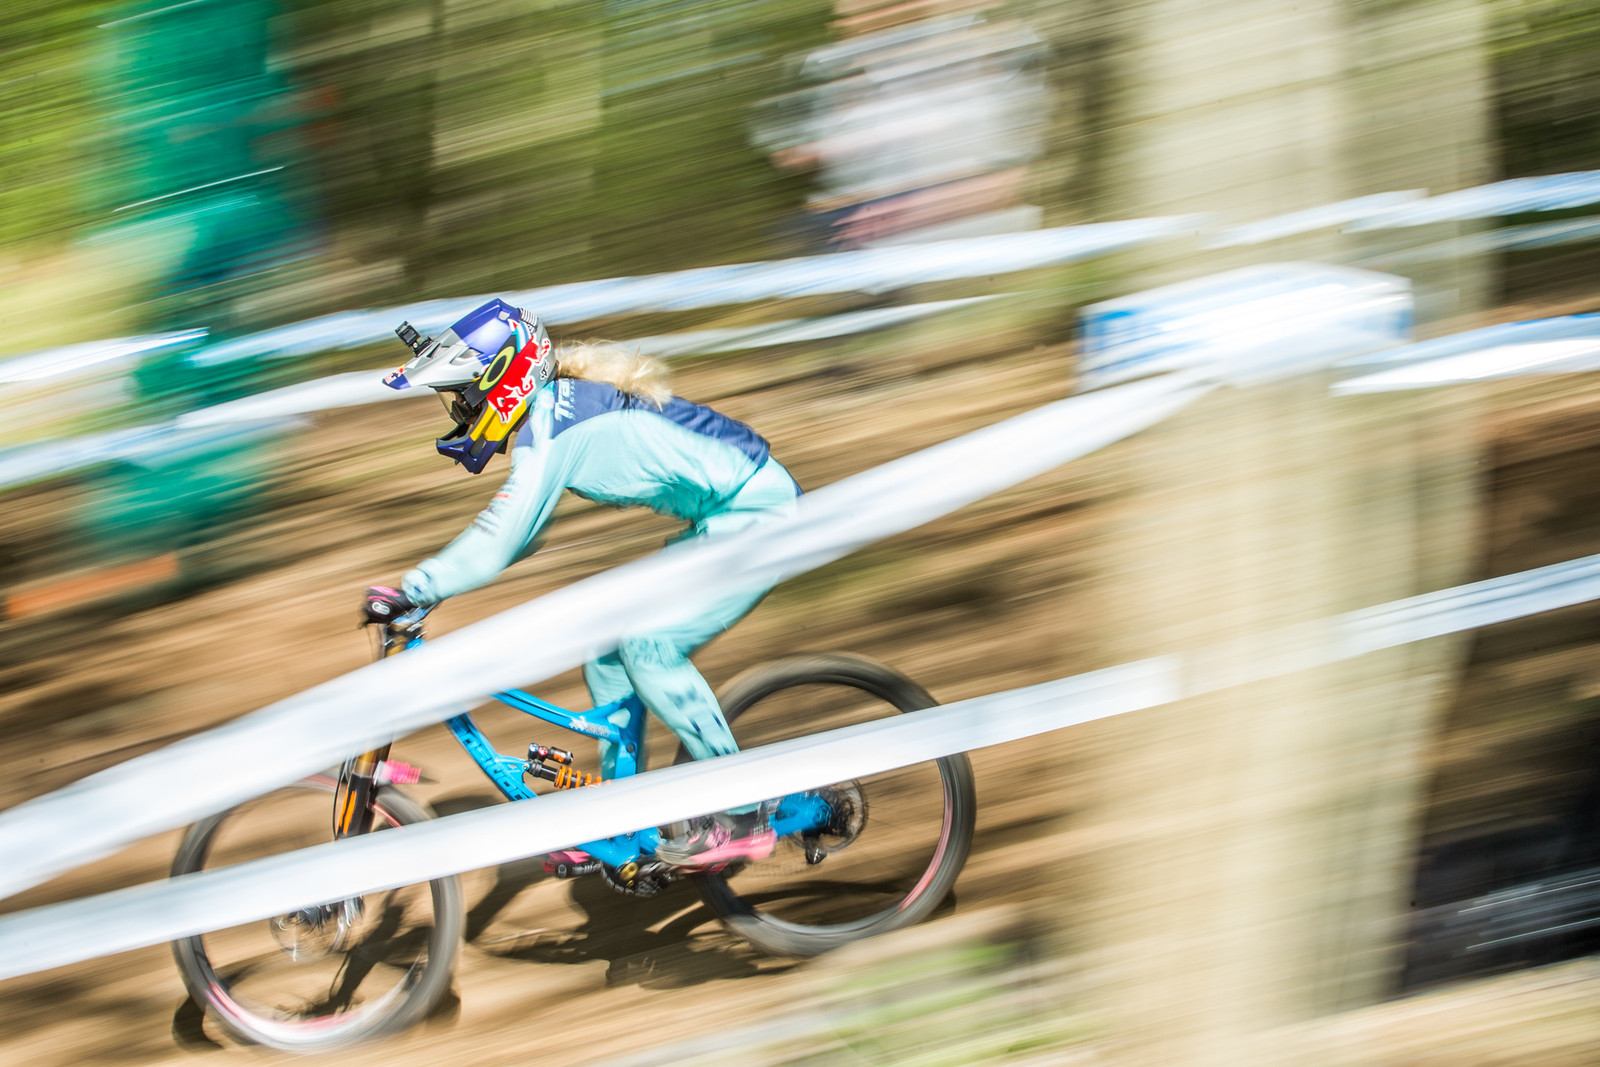 Tahnee Seagrave - Lourdes World Cup Timed Training Action Photos - Mountain Biking Pictures - Vital MTB